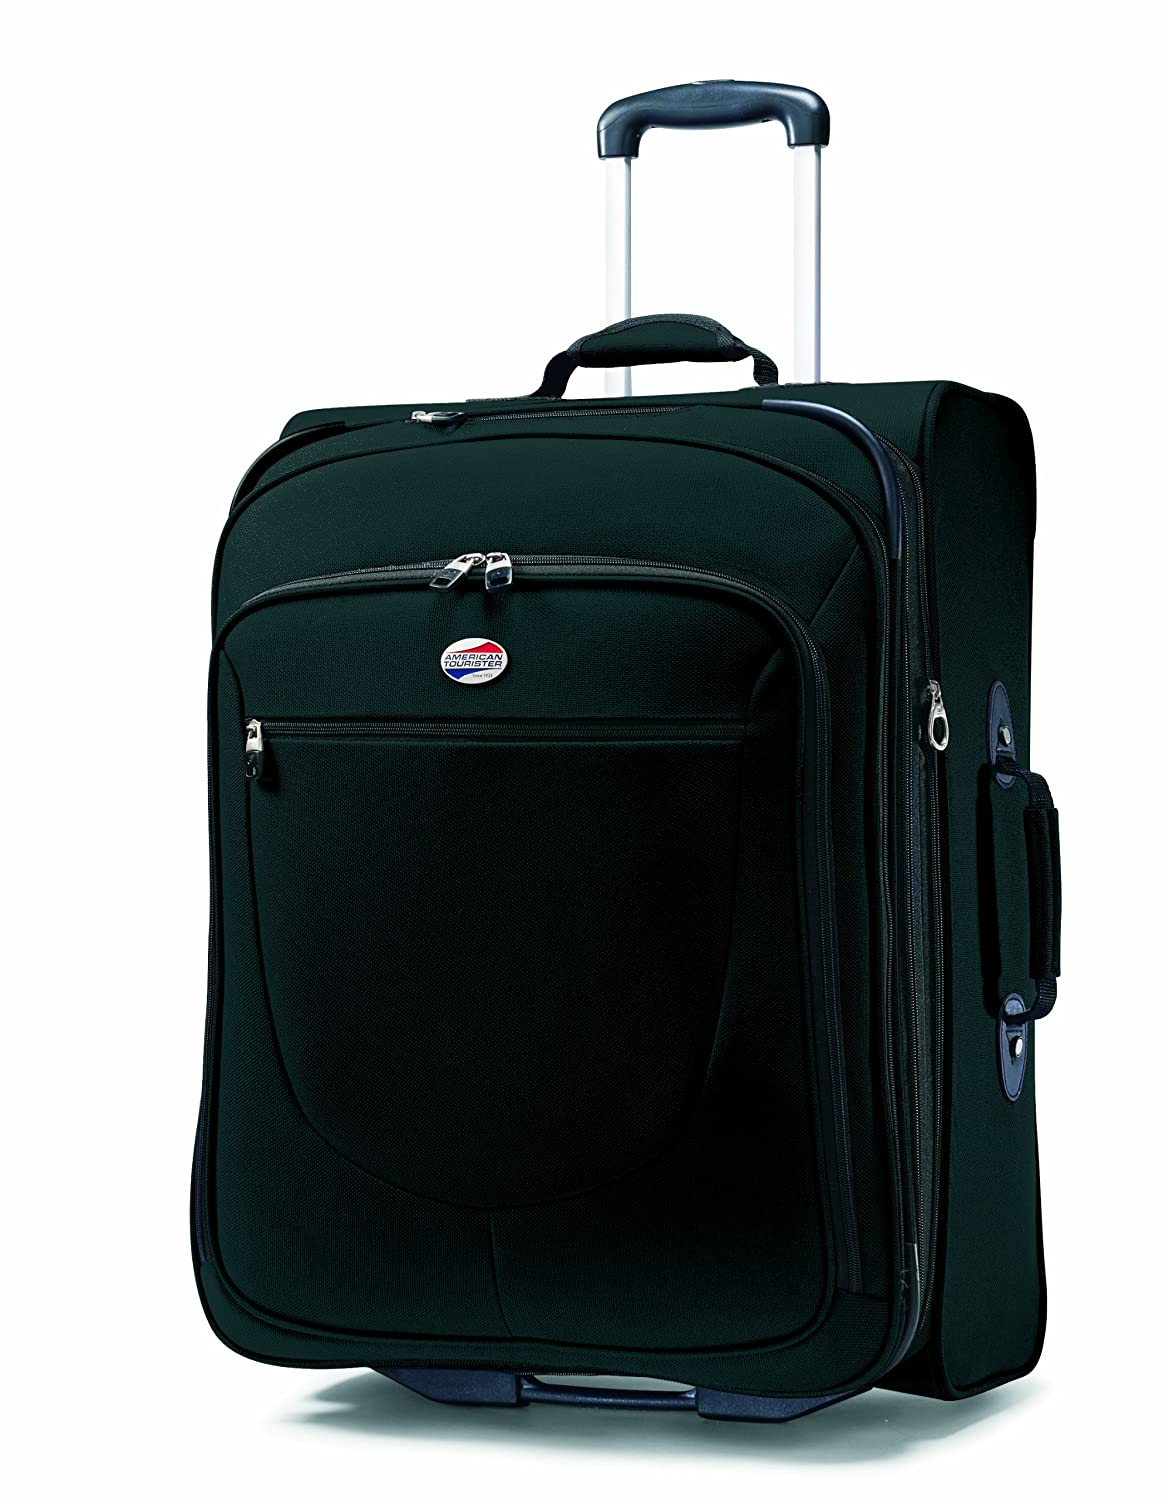 the gallery for gt american tourister trolley bags sizes